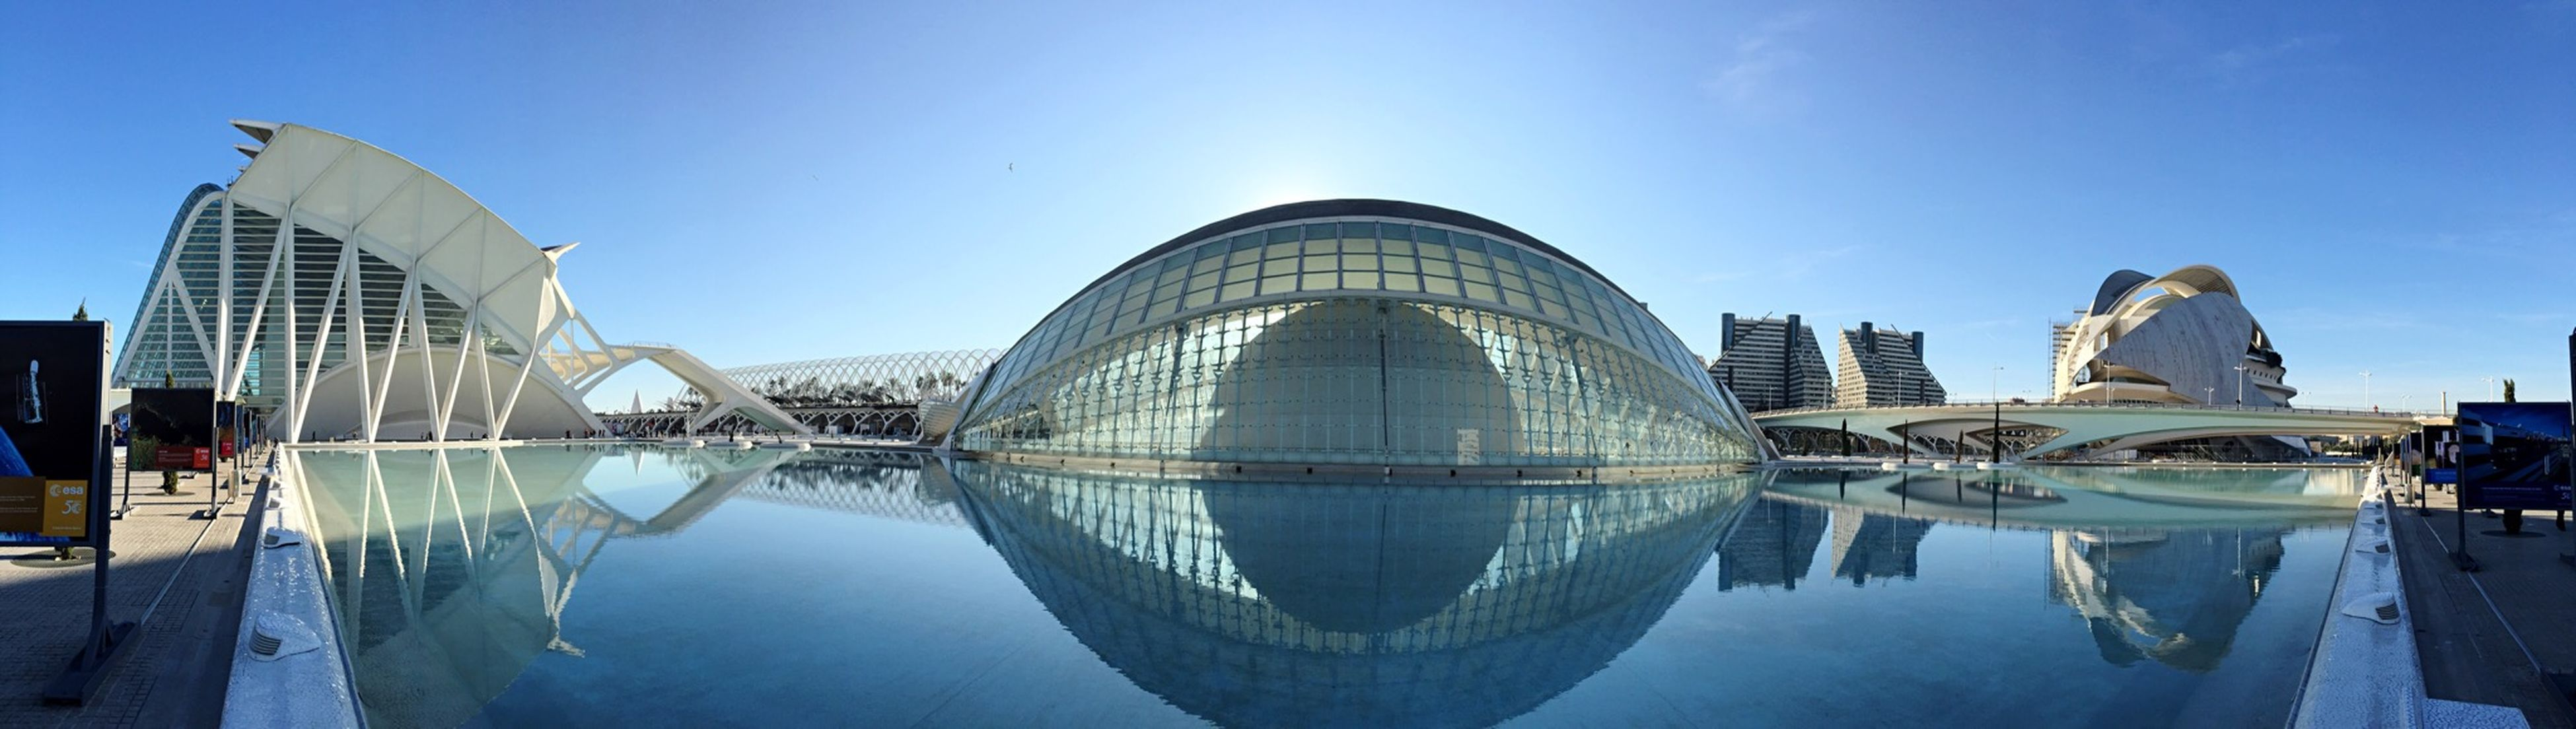 architecture, built structure, building exterior, water, reflection, blue, city, modern, clear sky, waterfront, sky, famous place, capital cities, river, travel destinations, panoramic, day, sunlight, fountain, outdoors